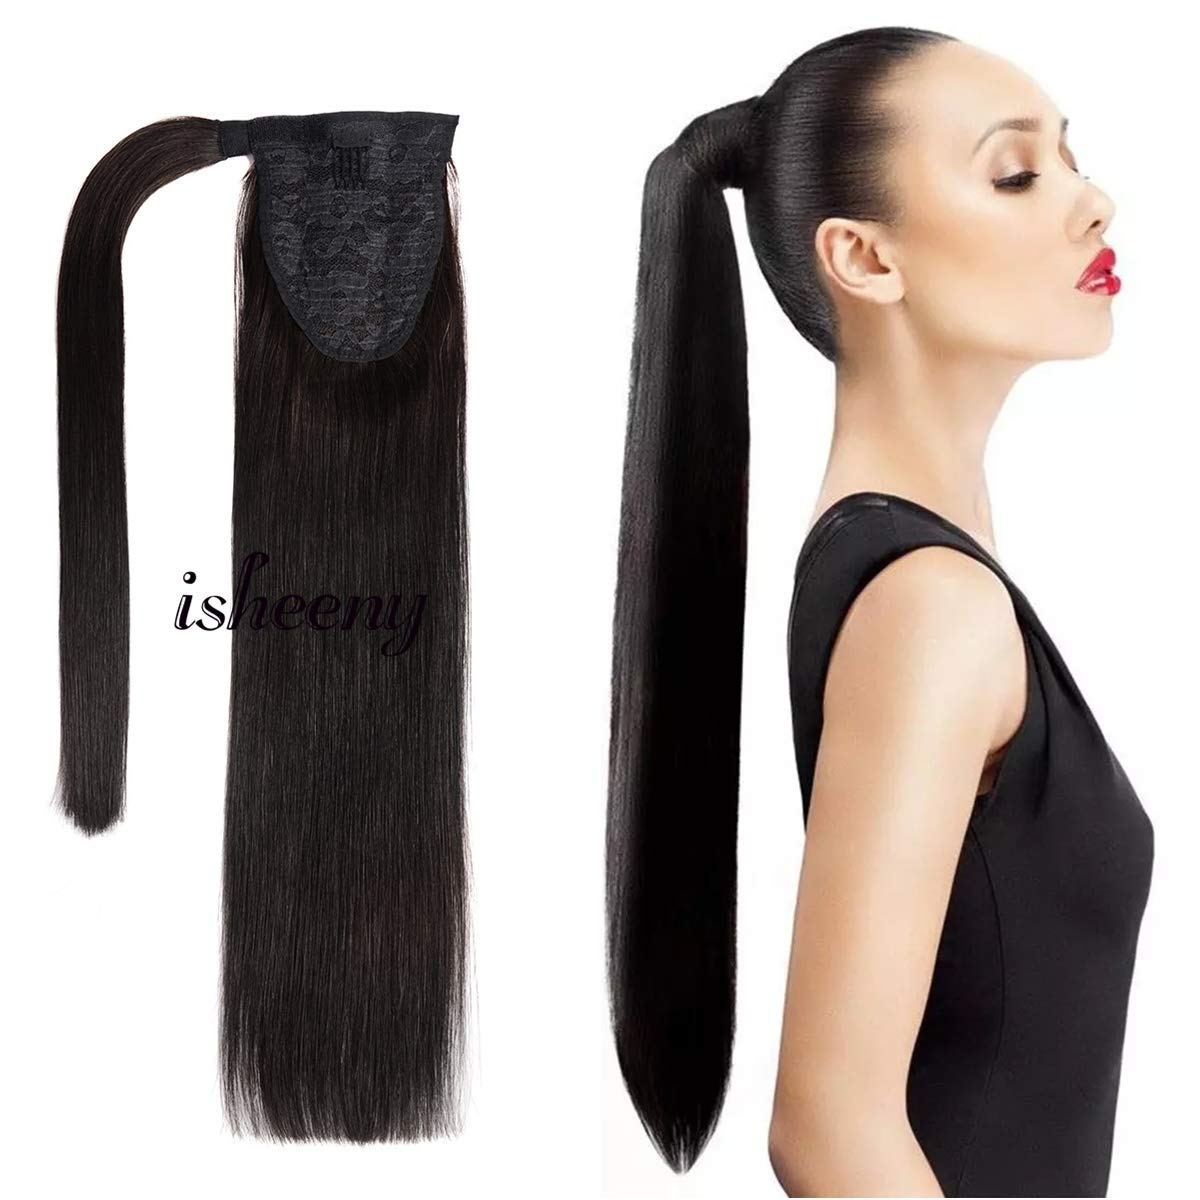 14'' Clip In Human Ponytail Hair Extensions Remy Human Hair Piece For Women - 1 Piece Hairpiece 60 Grams Wrap Around Ponytail Human Hair Extensions Black Color